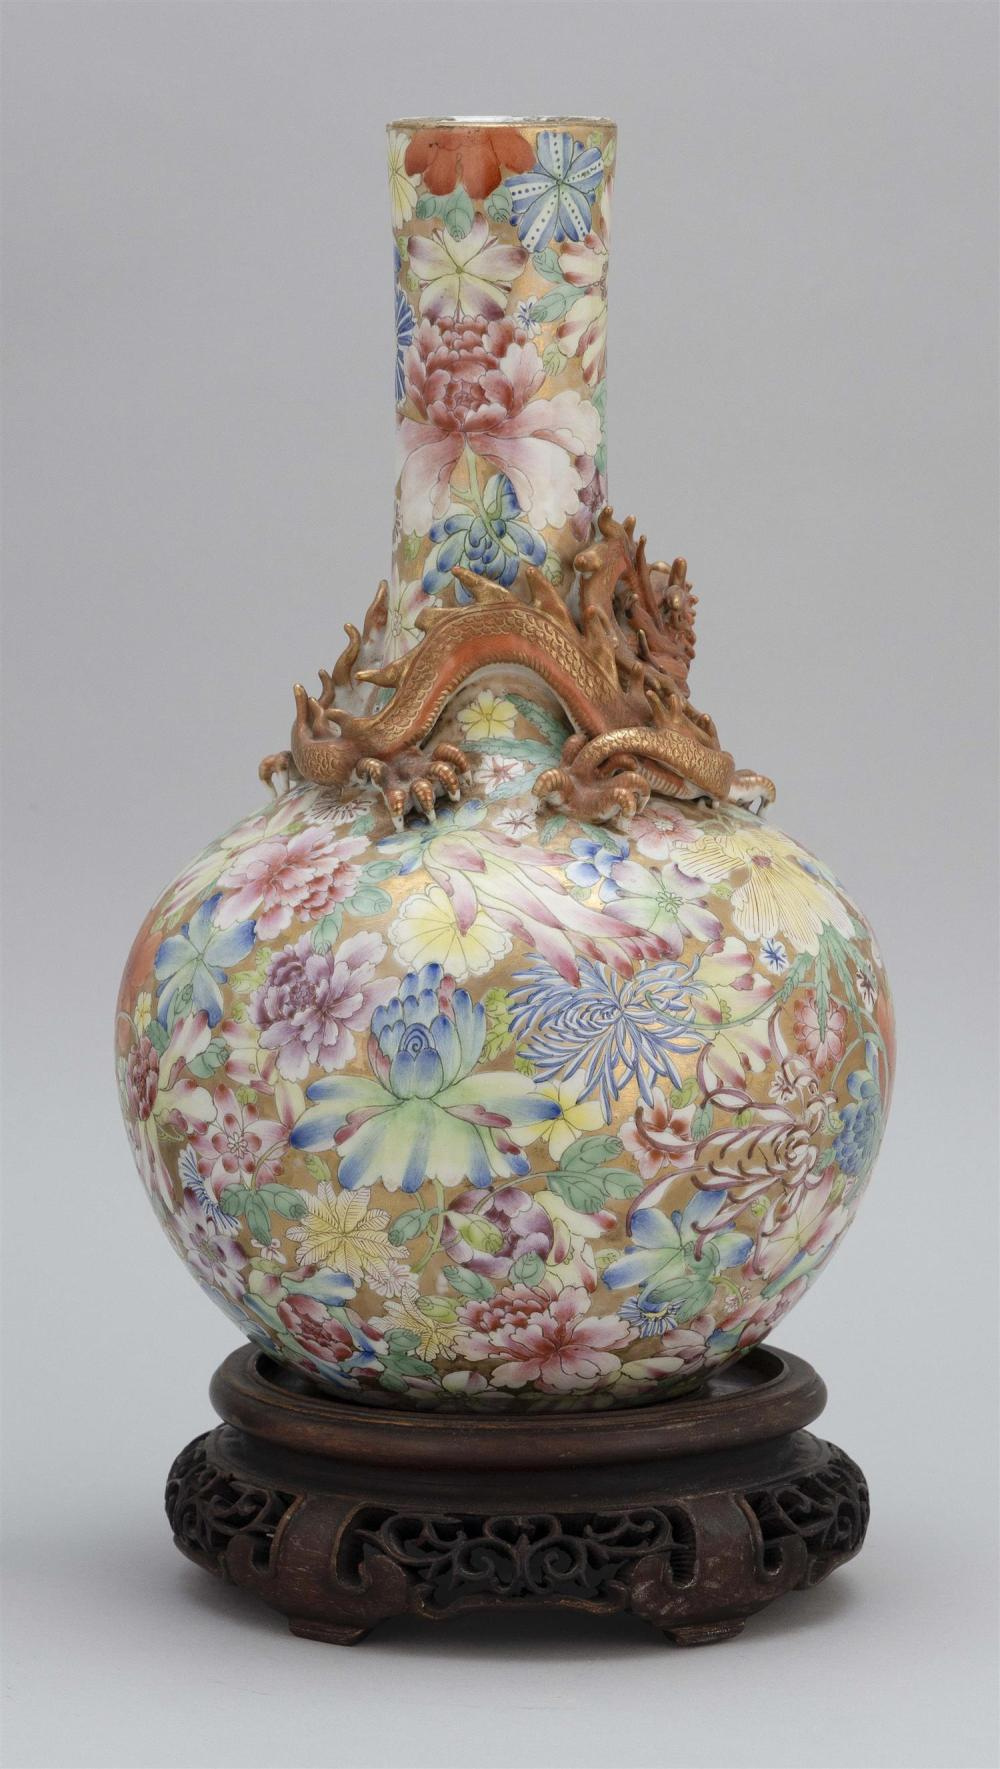 CHINESE PORCELAIN VASE Thousand Flower decoration. Applied dragon at shoulder. Drilled through seal mark on base. Height 13.75